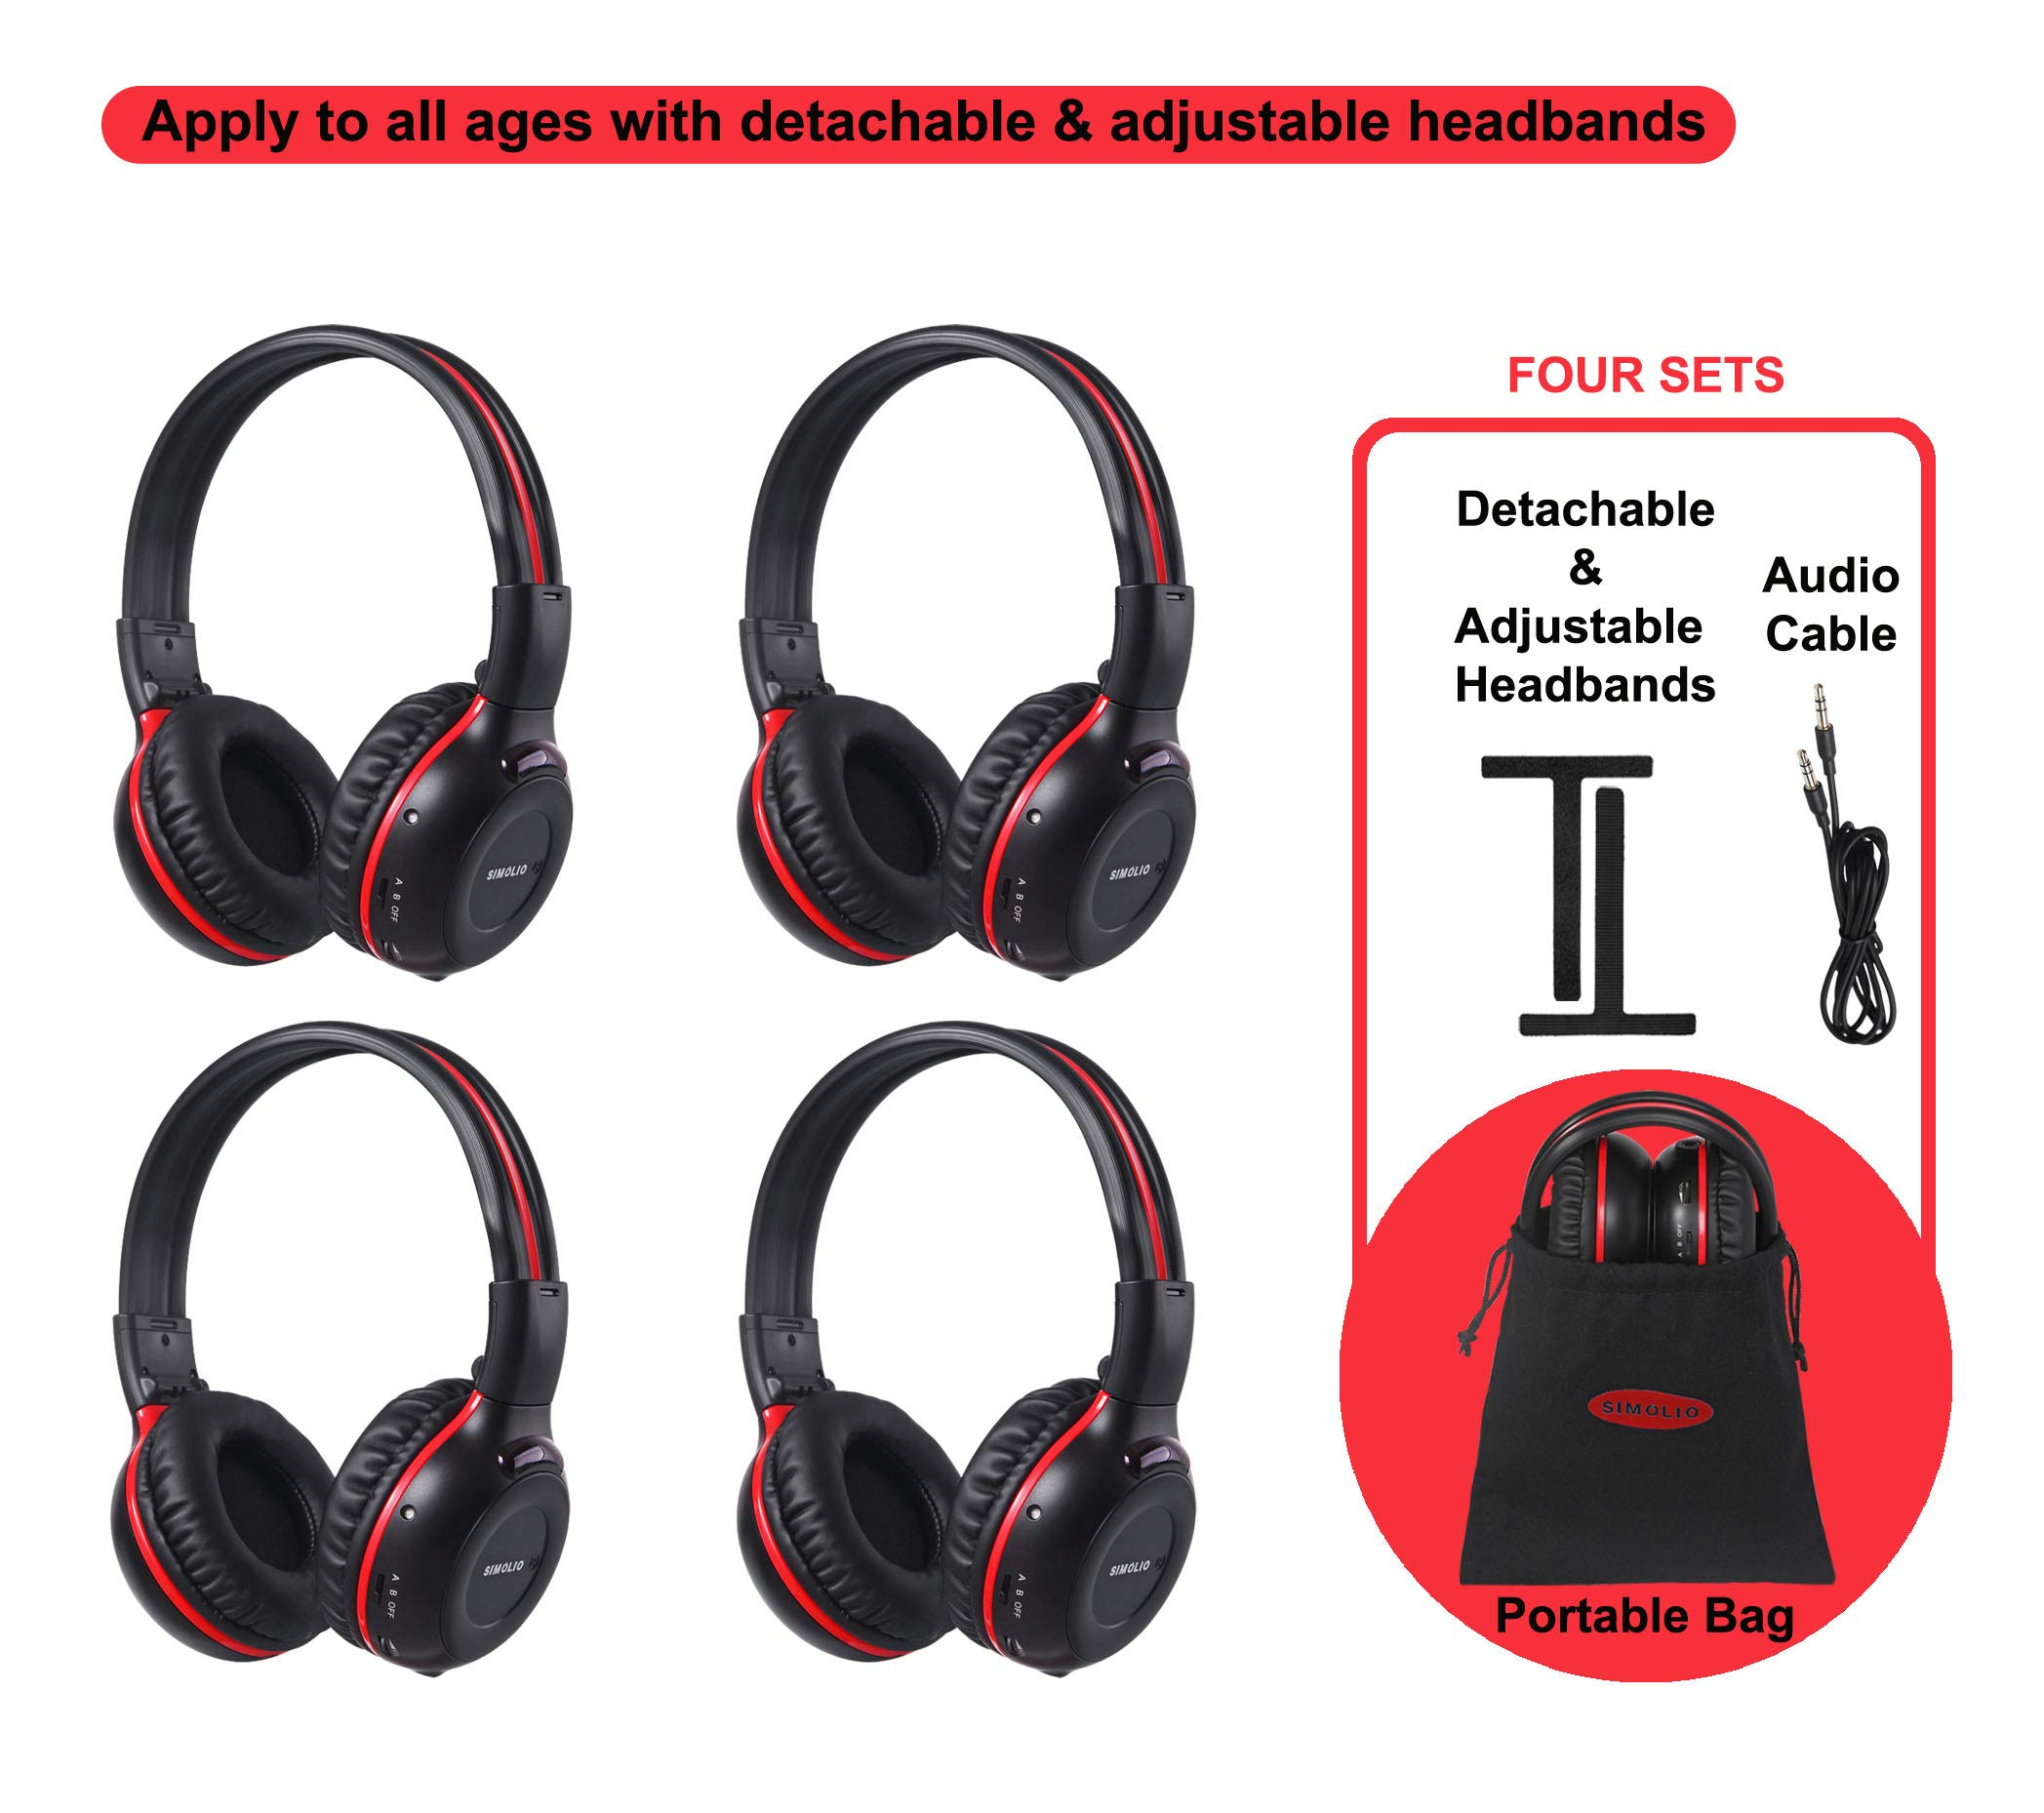 4 Pack of Vehicle Headphones, Support Car DVD Player, Car Headphones for Rear Entertainment System,Durable and Flexible for Kids, Wireless Infared Headphones with 3.5mm AUX Cable by SIMOLIO